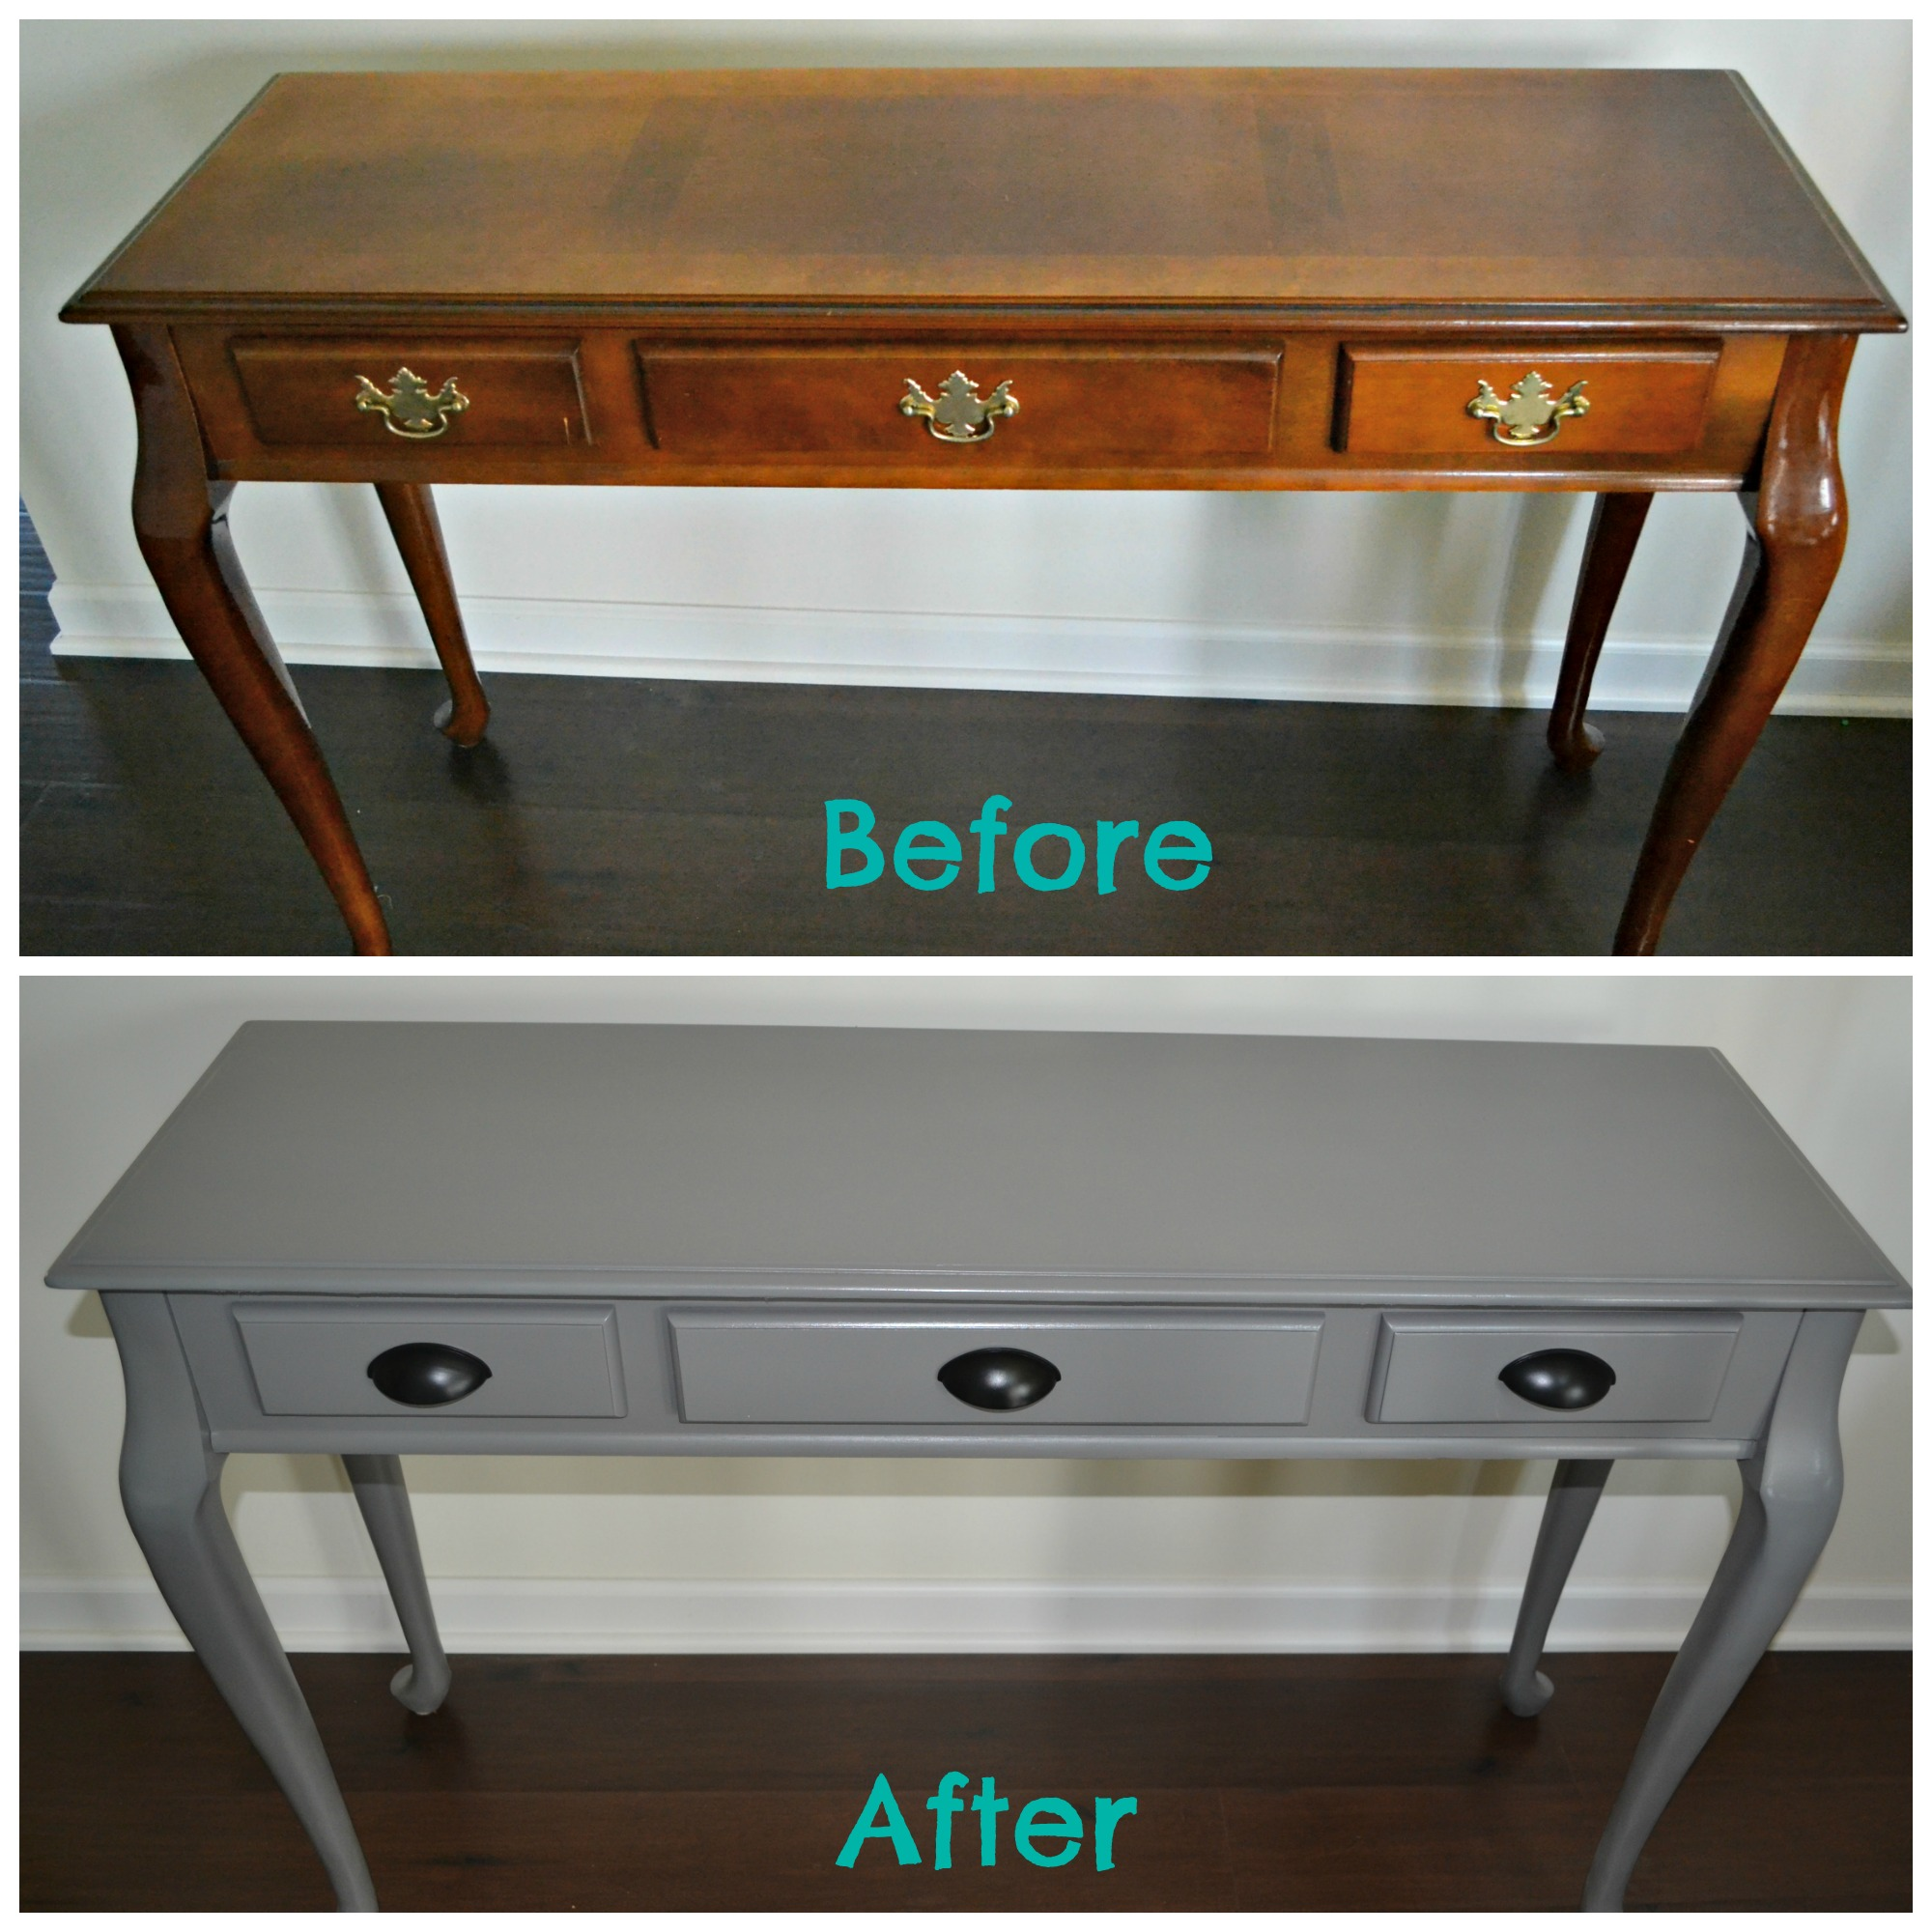 Marvelous Spray Paint Ideas For Furniture Part - 10: Upgrade Furniture